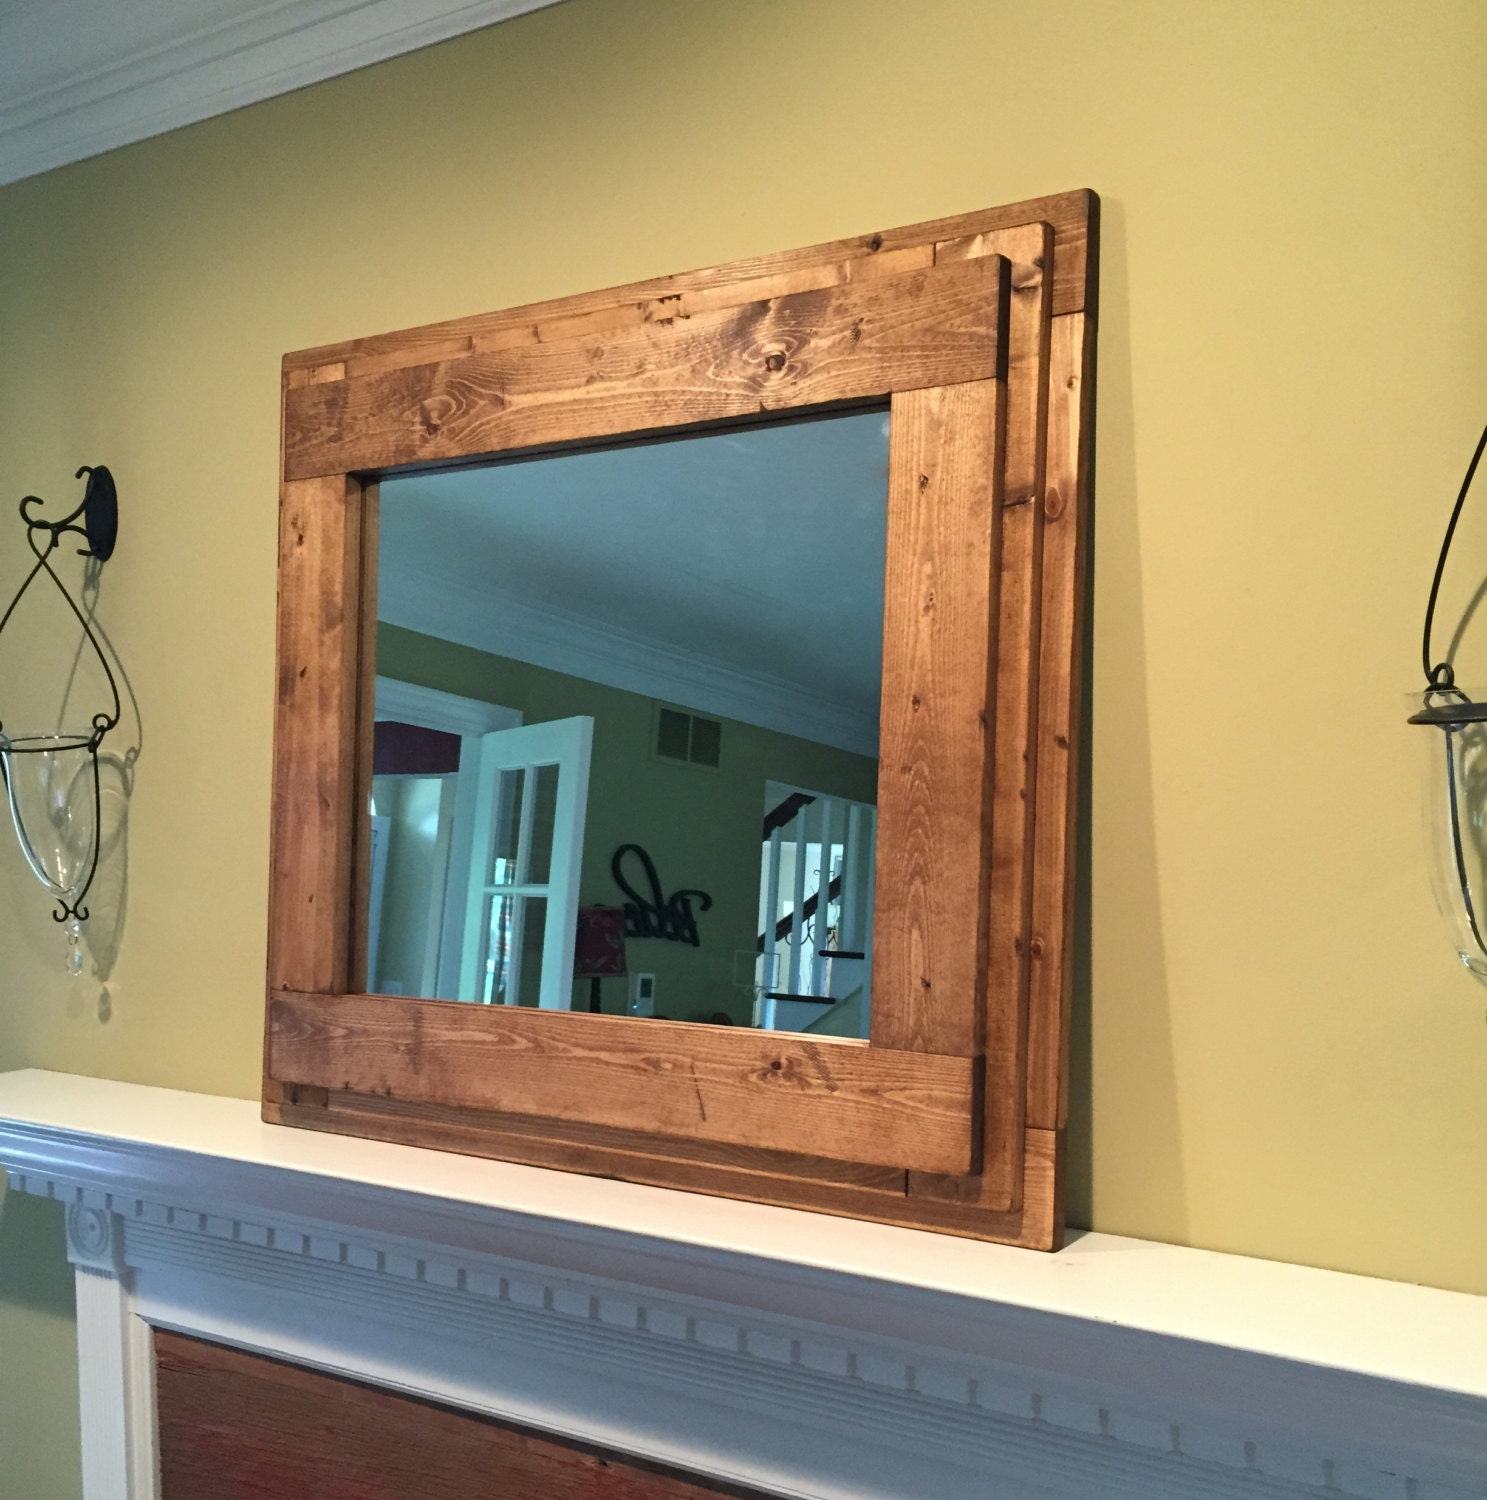 Bathroom mirrors wood frame - The Farm House Mantle Vanity Bathroom Mirror Handmade Rustic Inspired Wooden Mirror Thick Frame